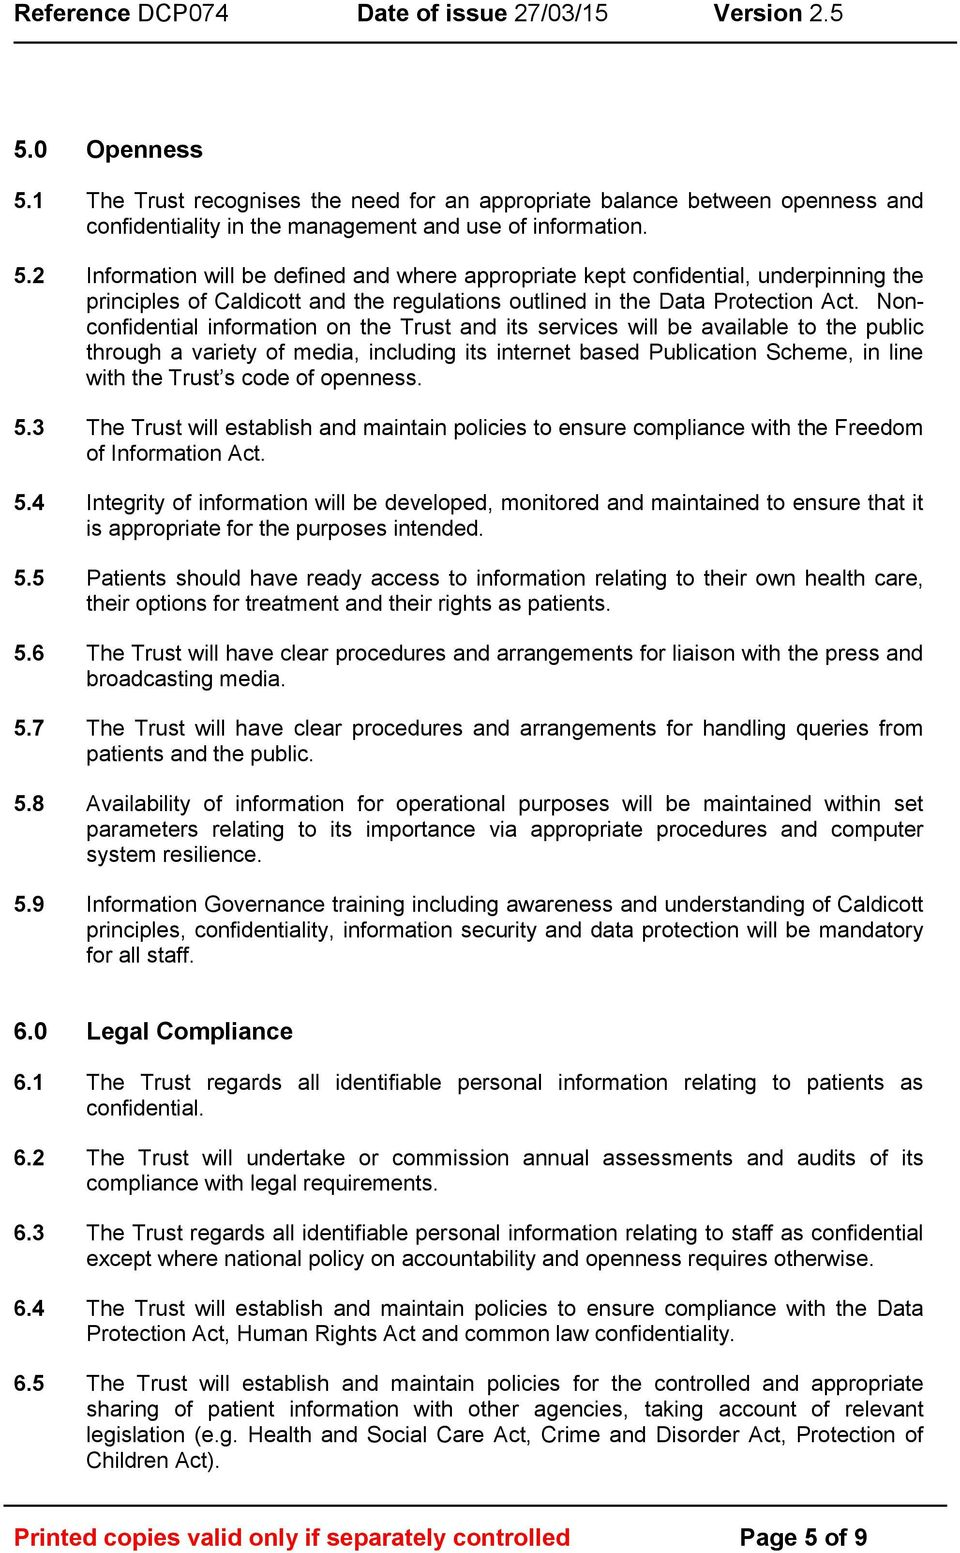 openness. 5.3 The Trust will establish and maintain policies to ensure compliance with the Freedom of Information Act. 5.4 Integrity of information will be developed, monitored and maintained to ensure that it is appropriate for the purposes intended.